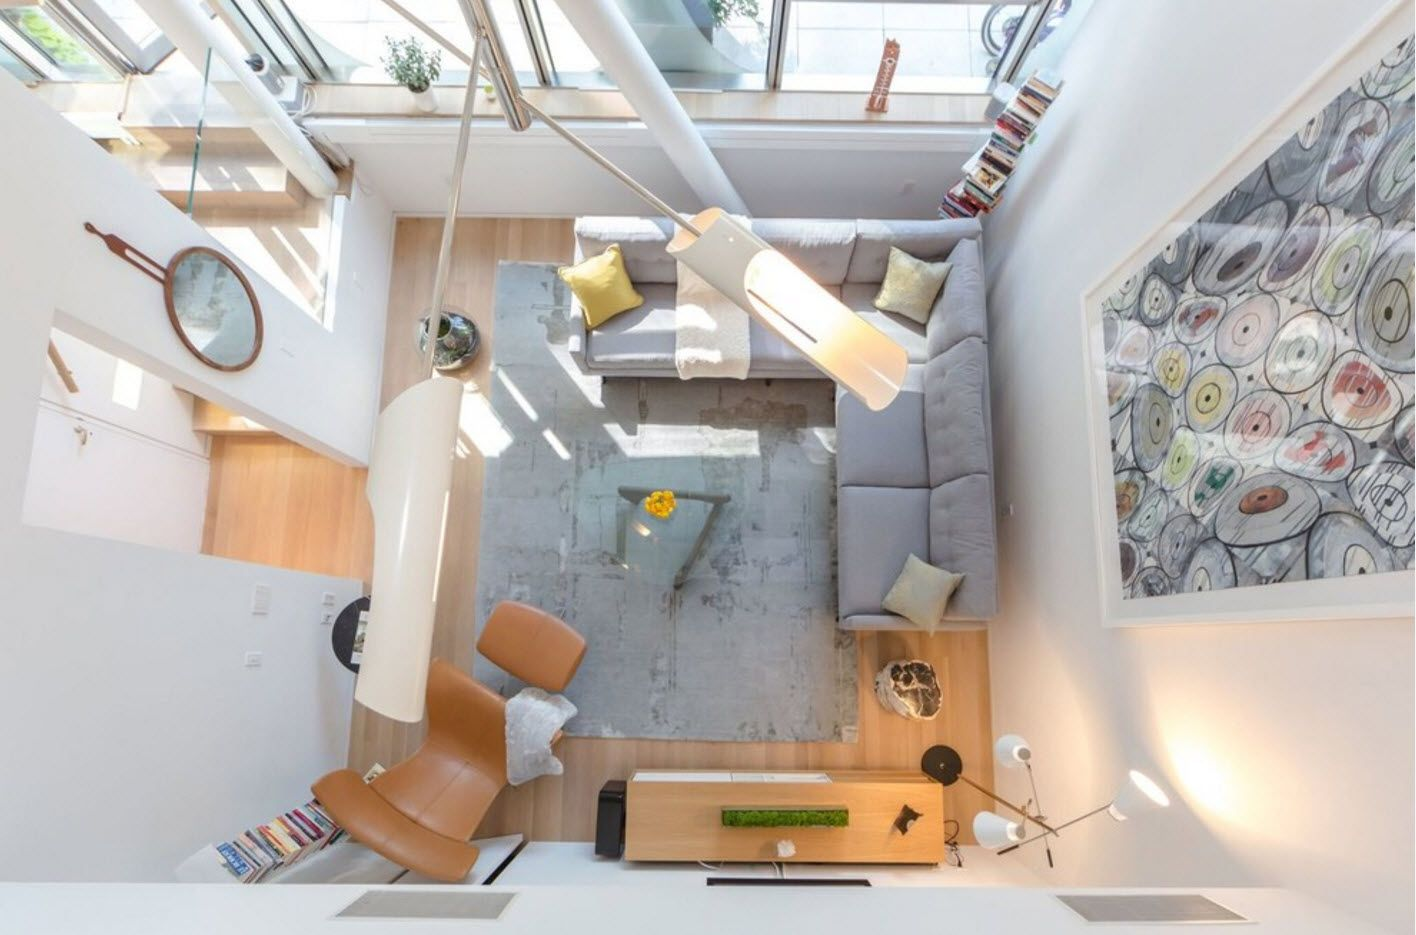 The Final Variation On Of Living Arrangement Is Studio Which Connected Also To A Kitchen With Dining Area In Addition Family Room